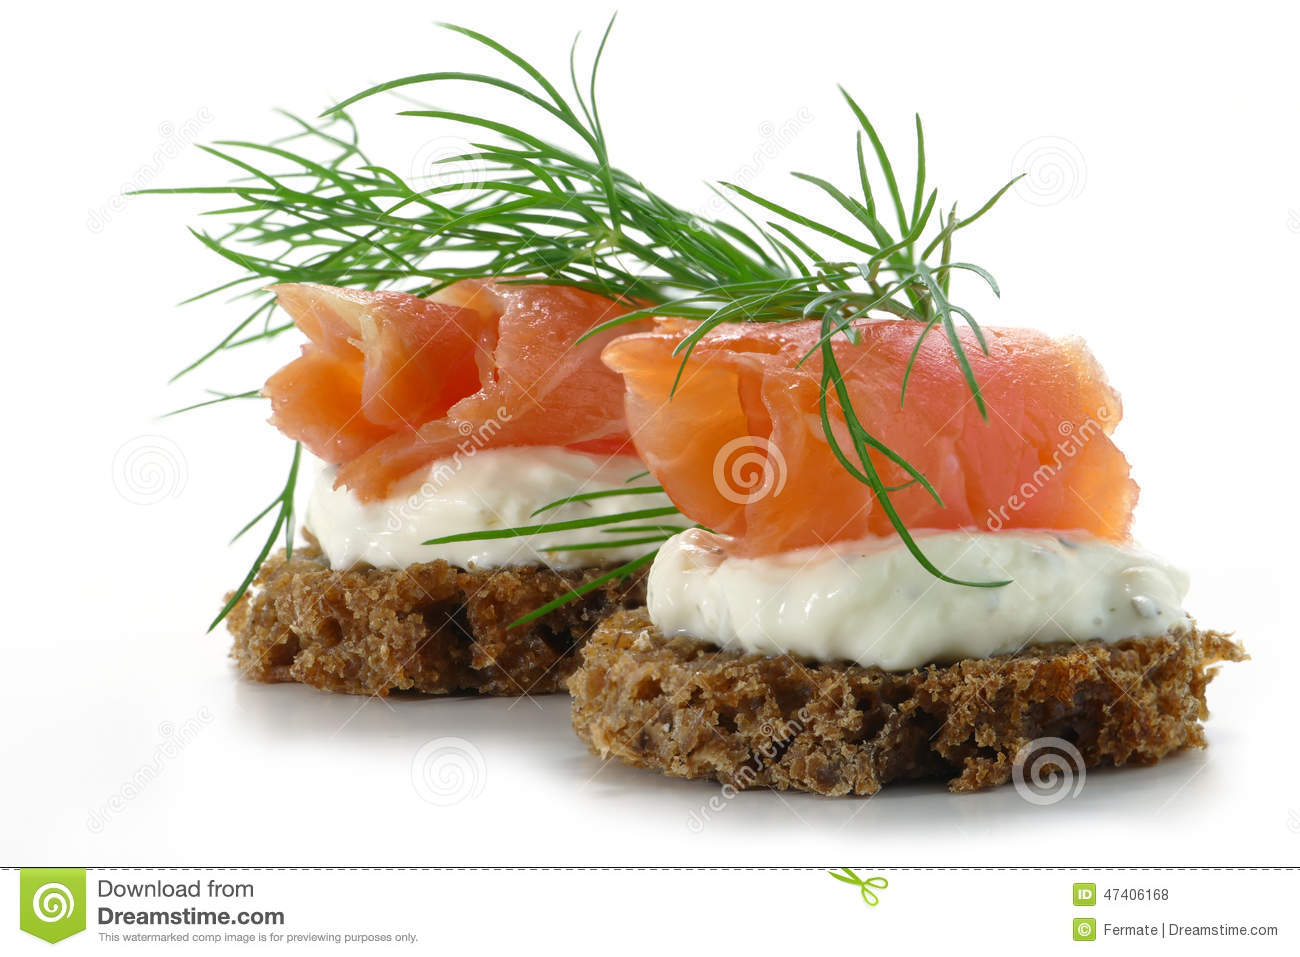 two salmon canapes with fresh dill garnish isolated on